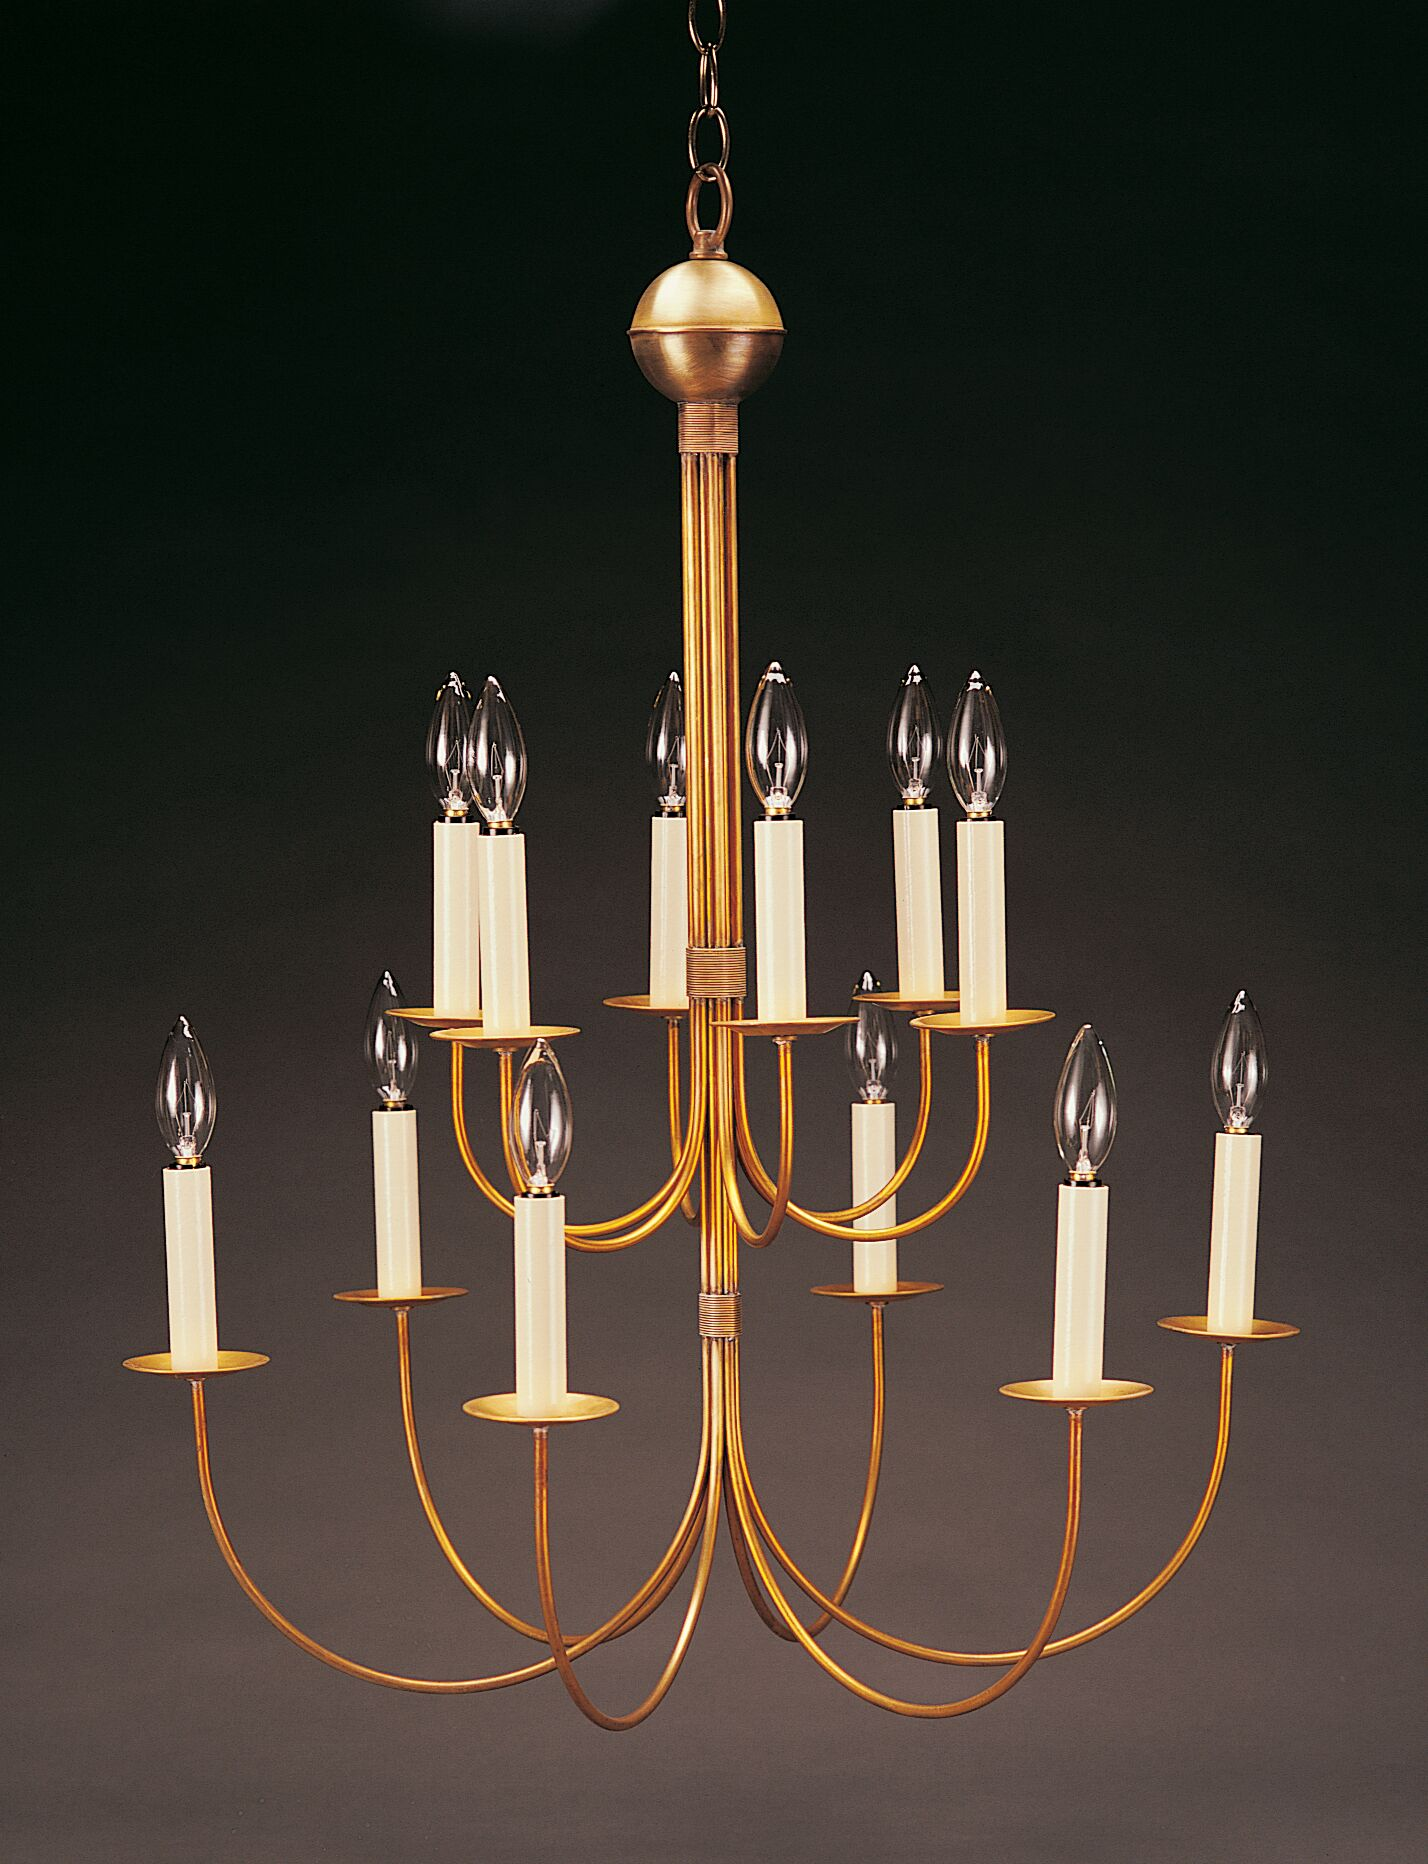 Sockets Hanging 2 Tier J-Arms 12-Light Chandelier Finish: Dark Brass